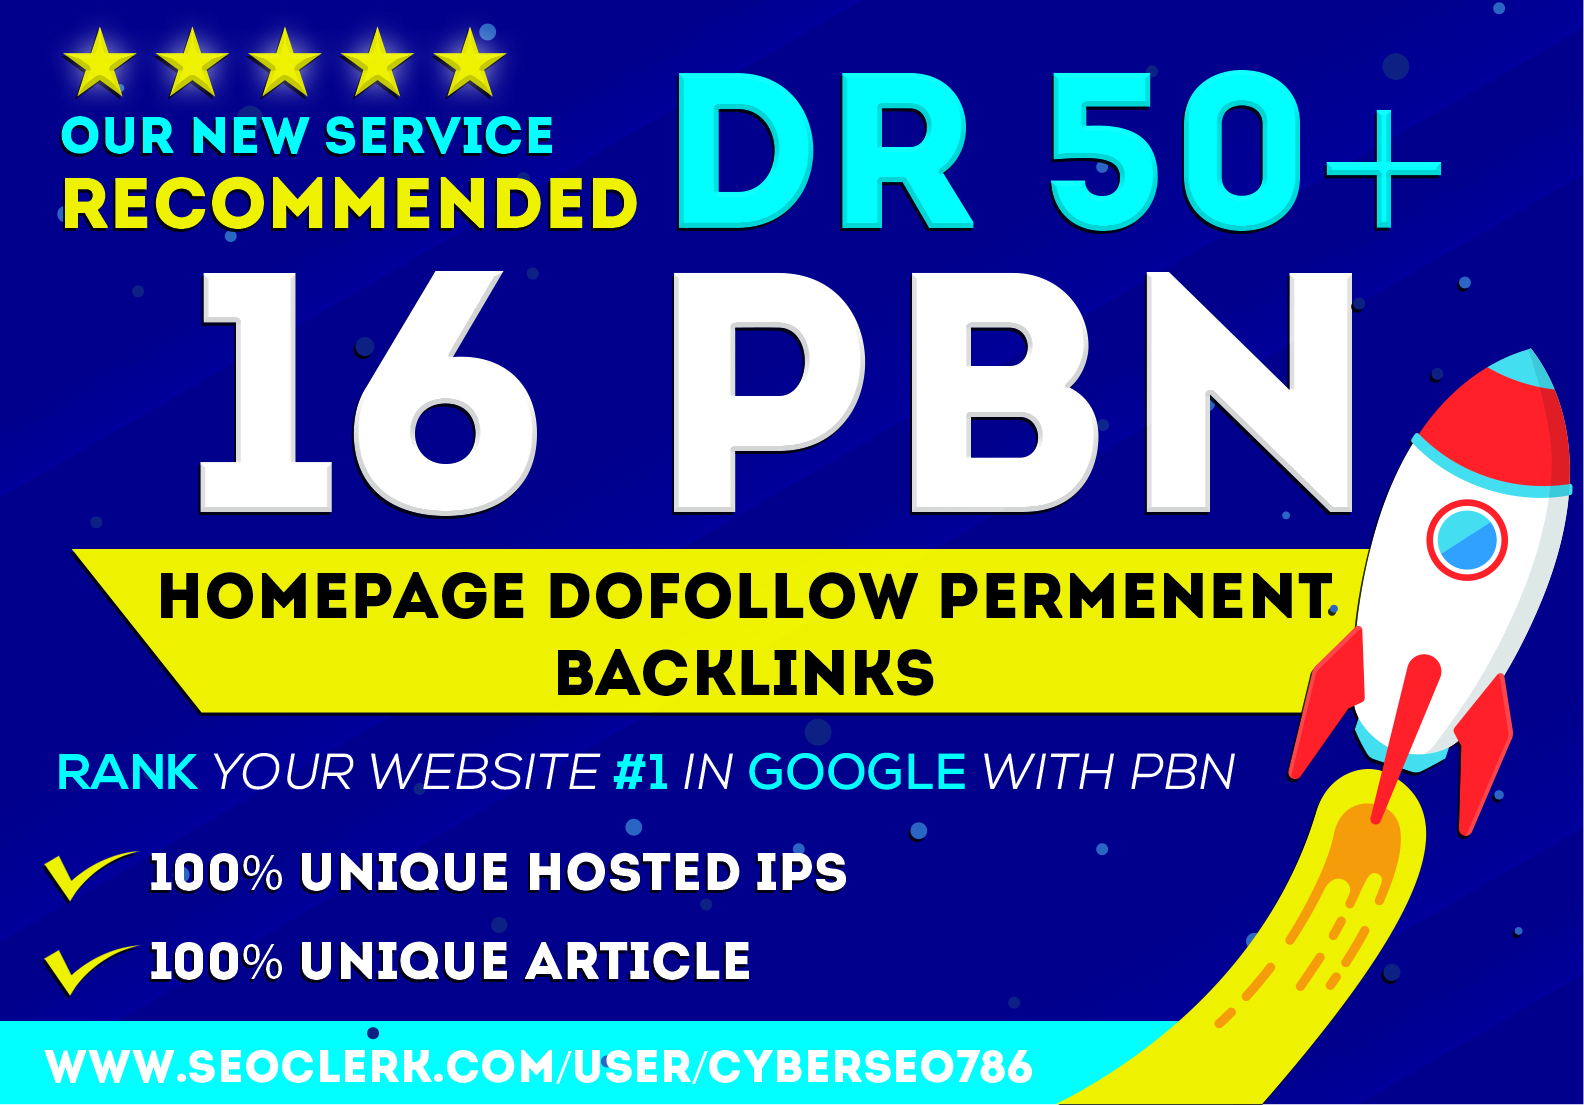 I will provide PBN DR 50 to 70 high quality dofollow backlinks